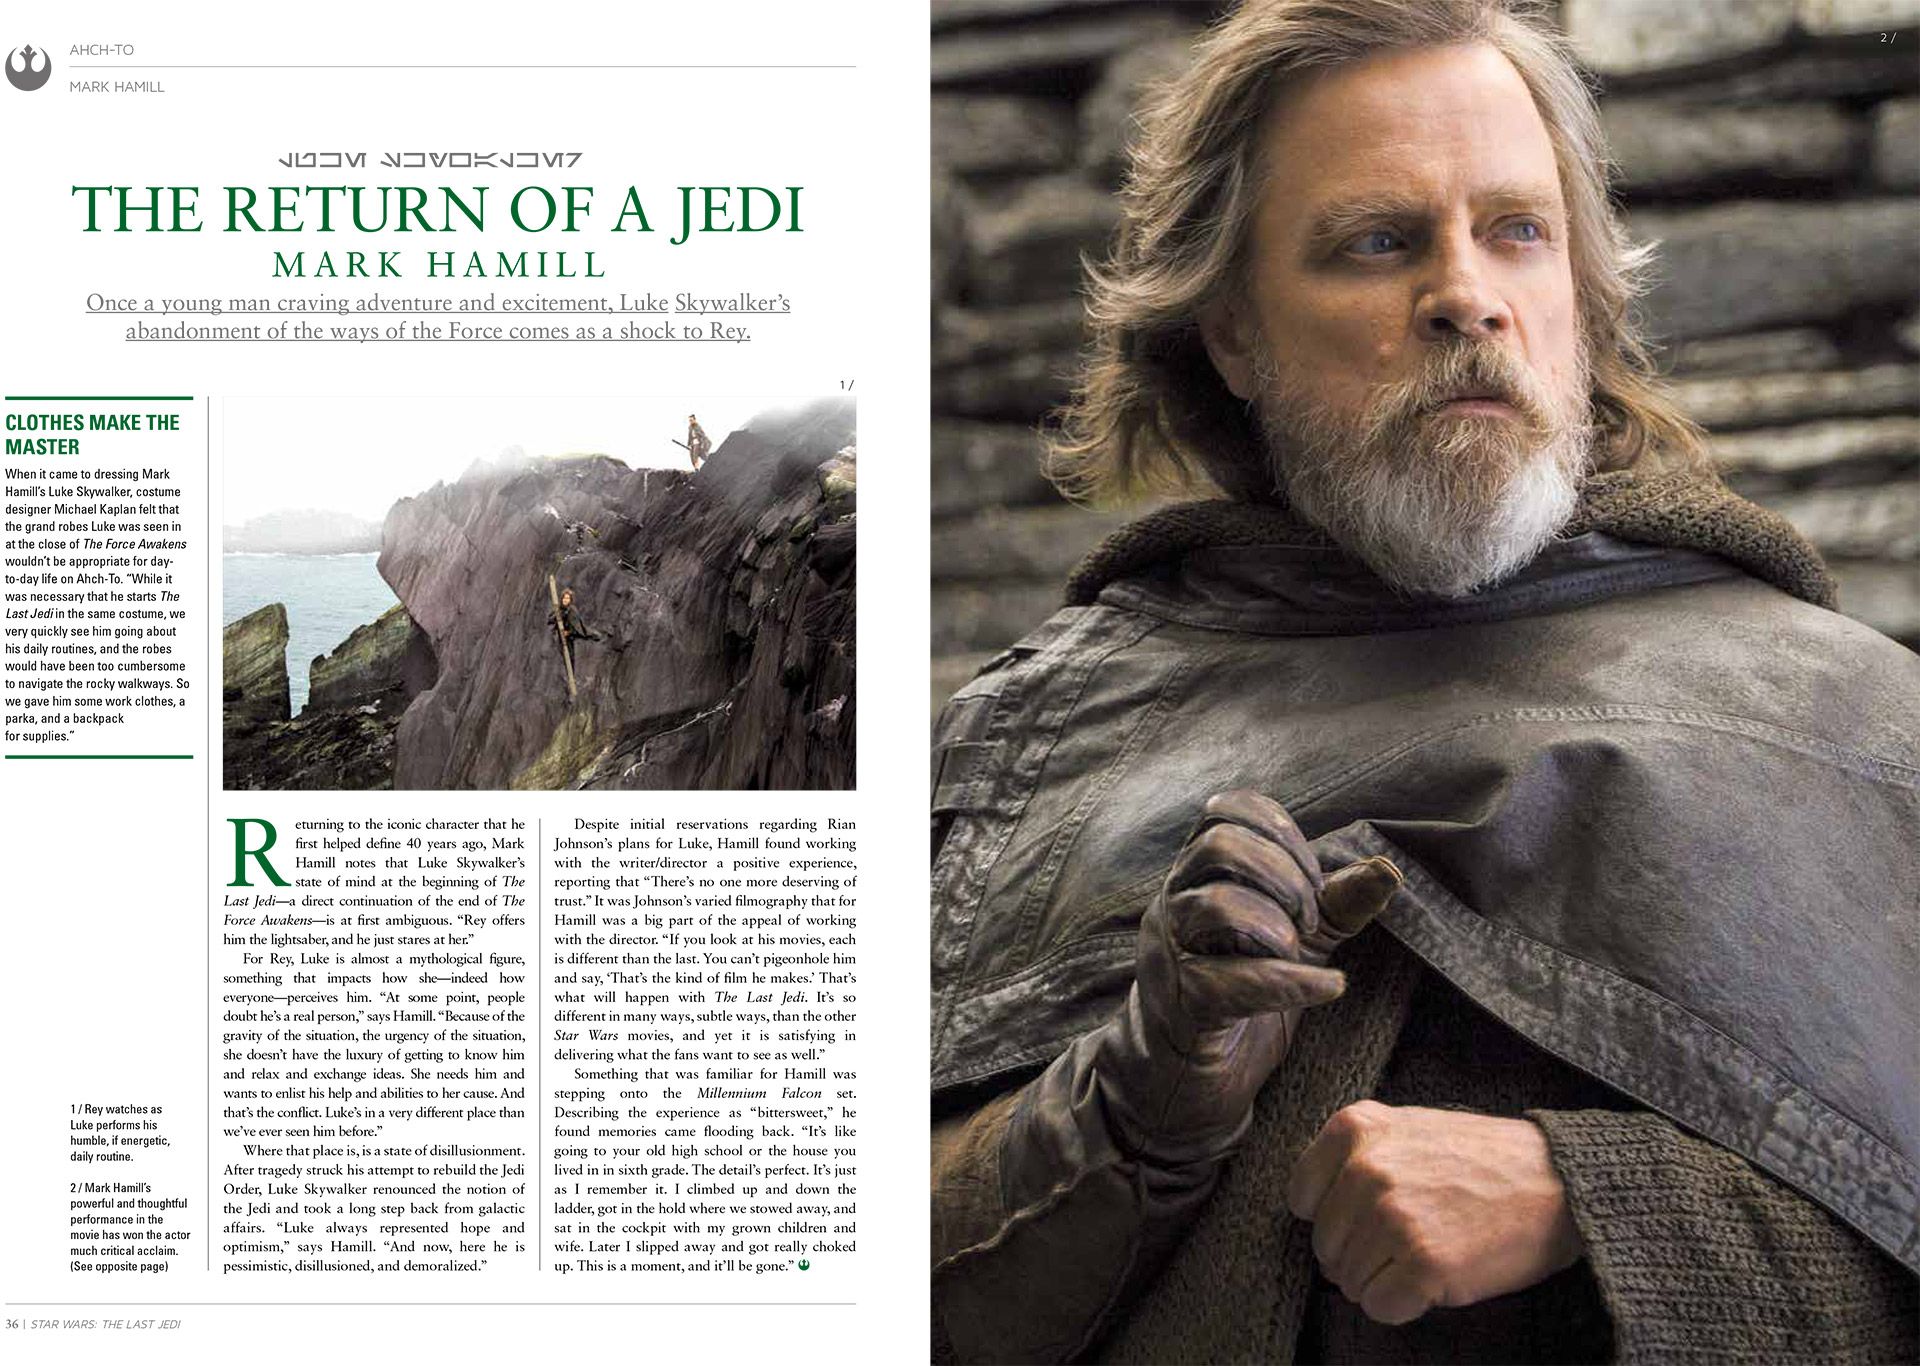 A spread from The Ultimate Guide to Star Wars: The Last Jedi.